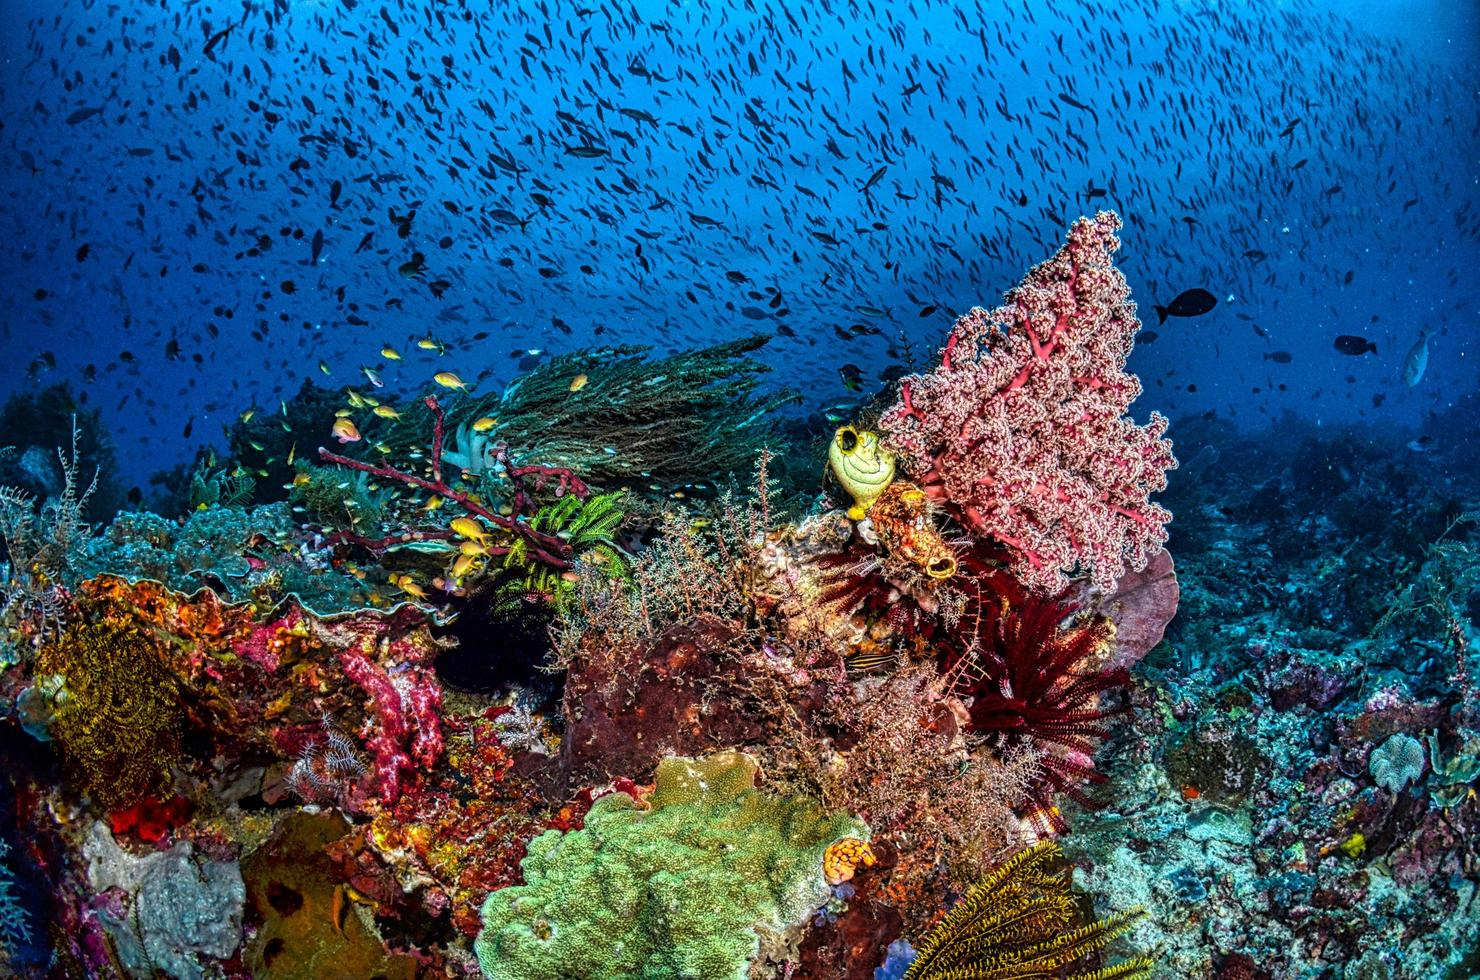 Close-up of coral reef photo